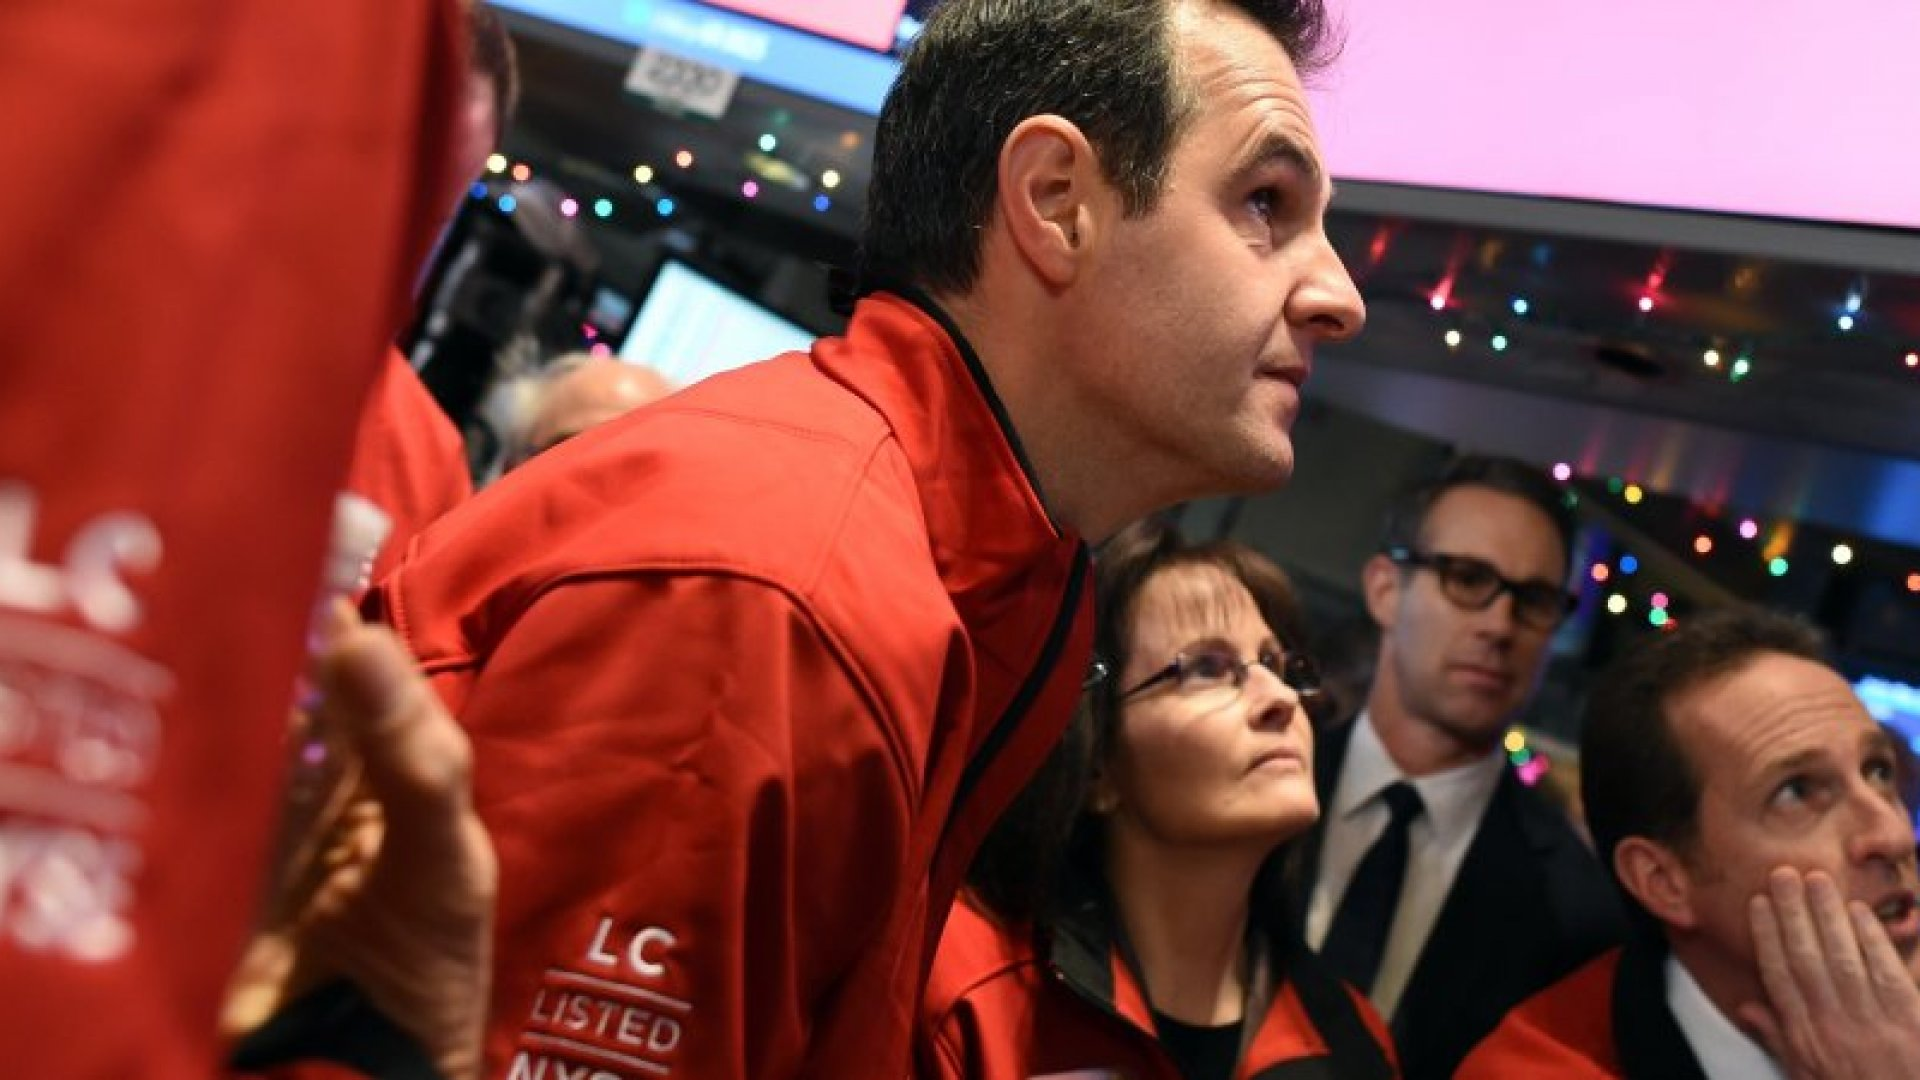 Lending Club's Blockbuster IPO Raises the Bar for Financial Startups